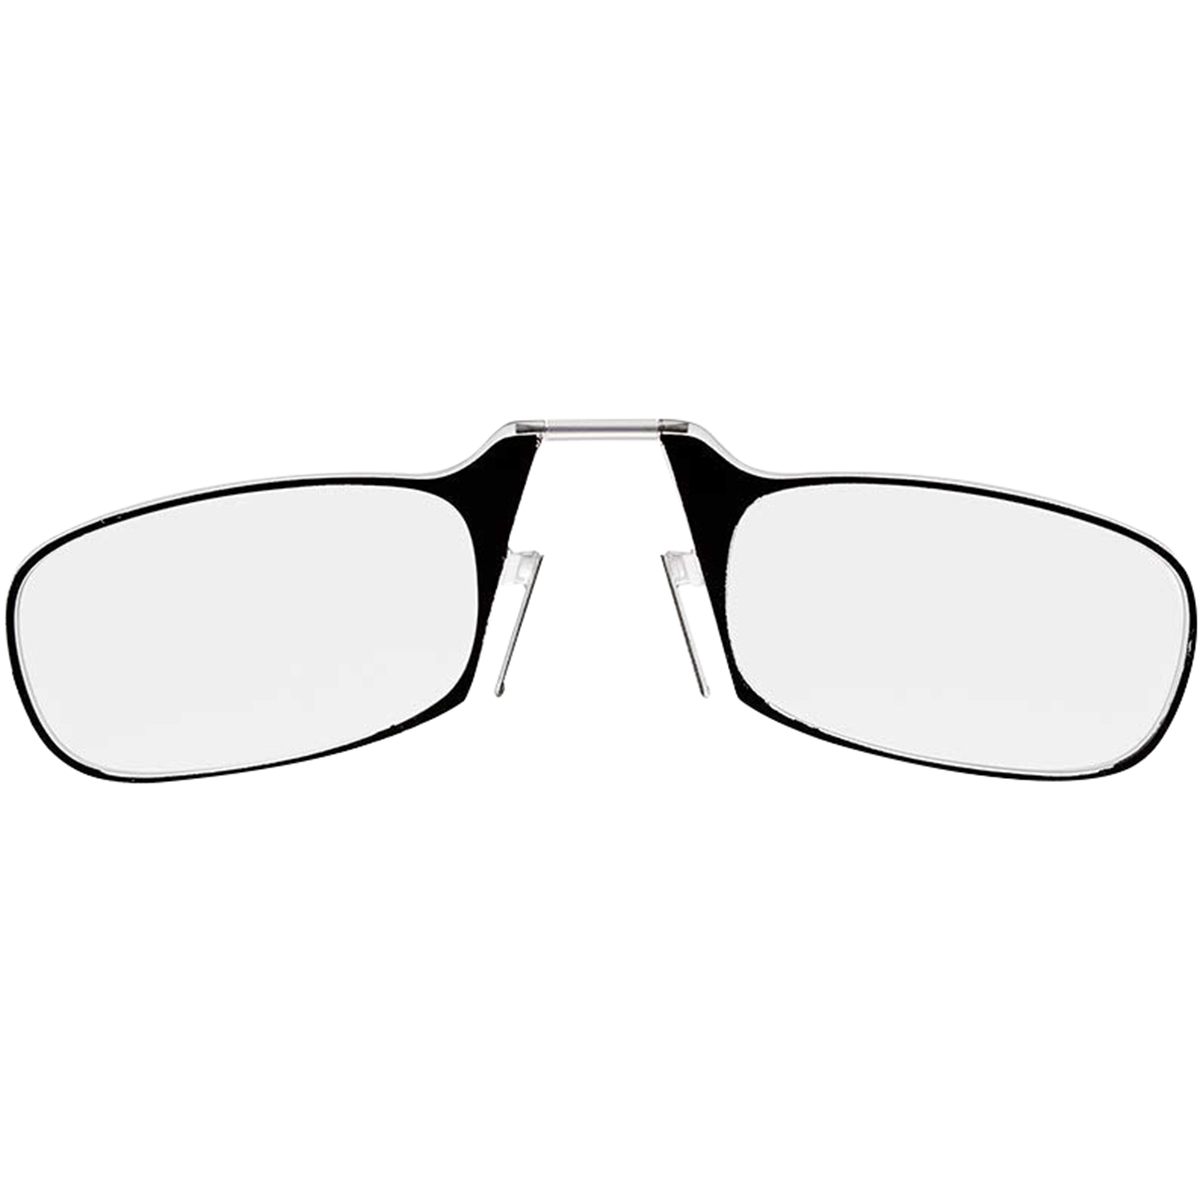 ThinOptics-Secure-Fit-Armless-Ultralight-Reading-Glasses-with-Universal-Pod-Case thumbnail 8